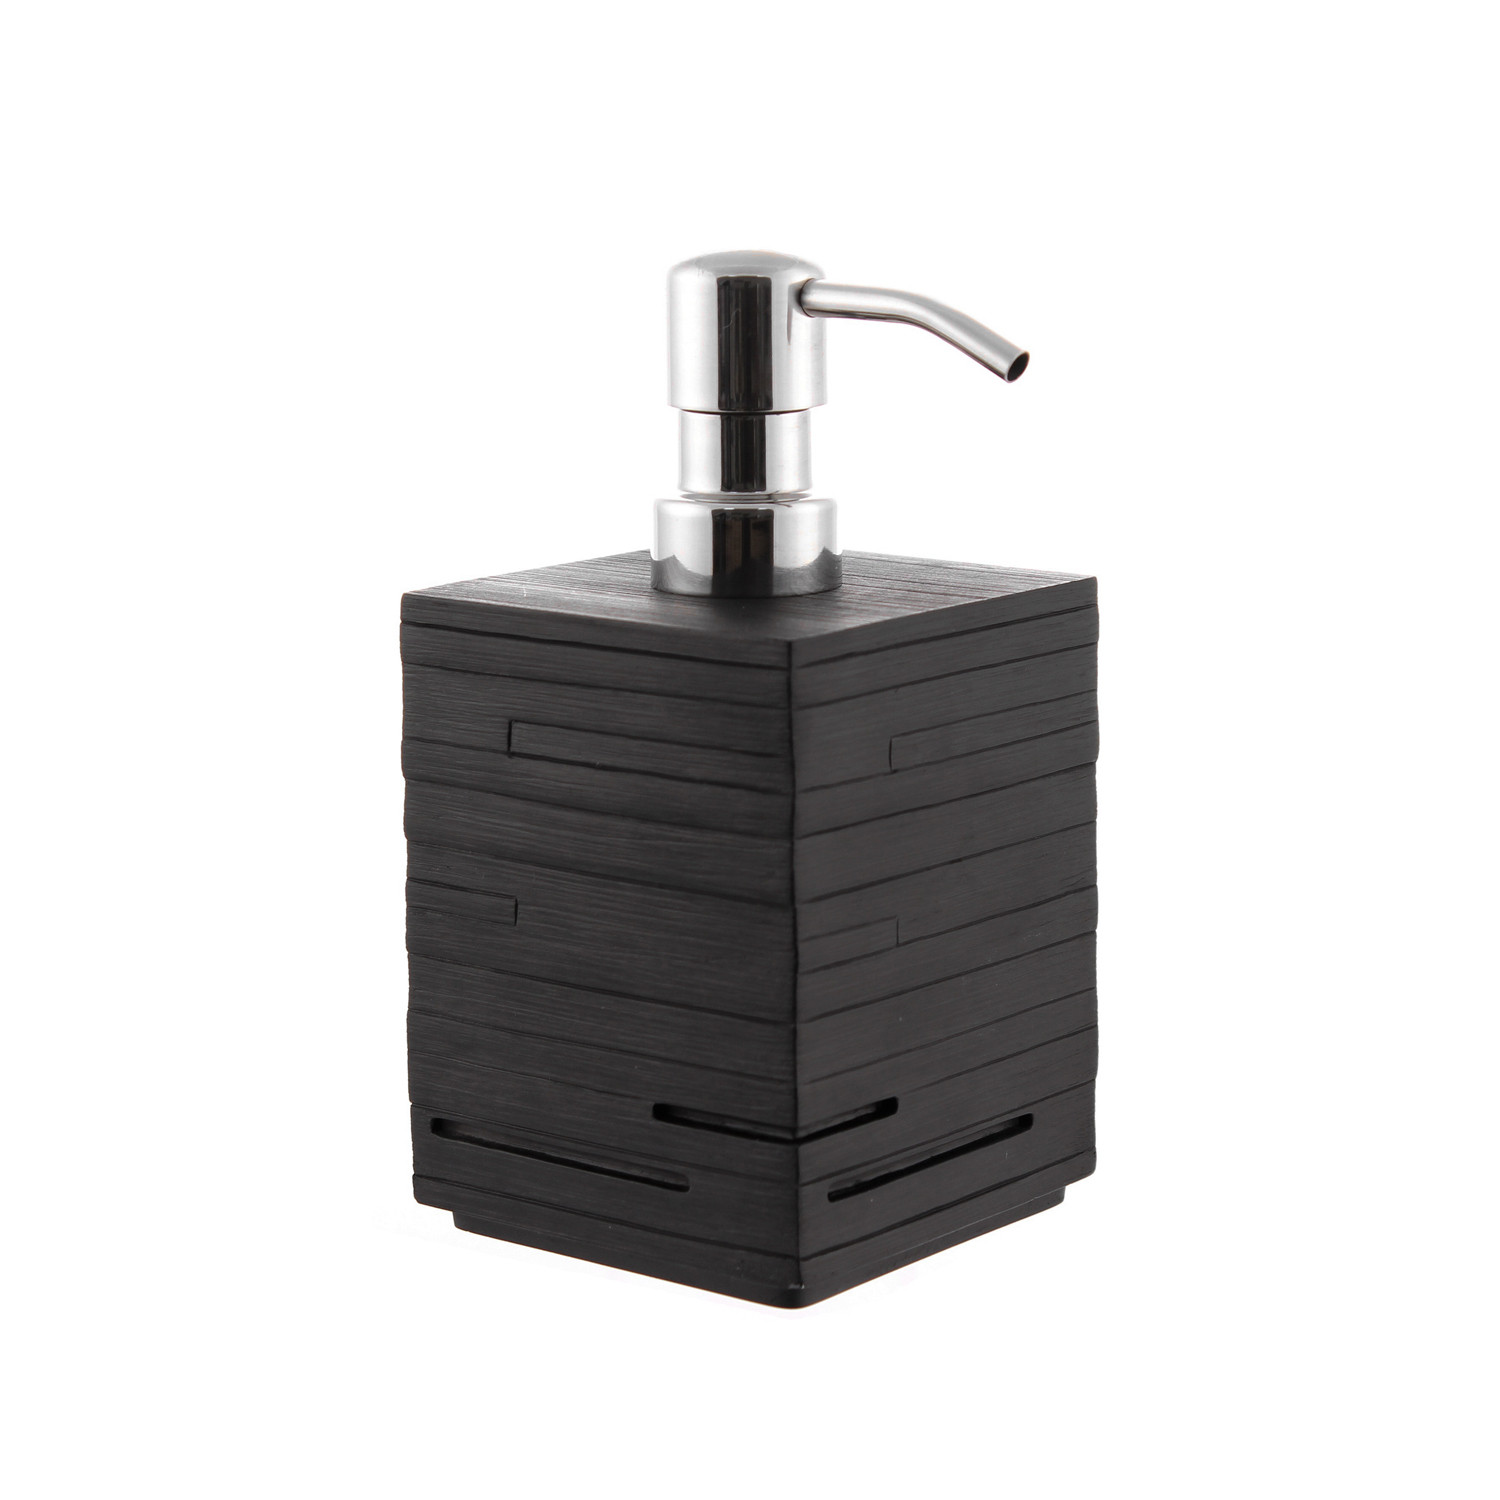 Gedy Soap Dispenser Quadrotto - Nameek' Bath Accessories Touch Of Modern